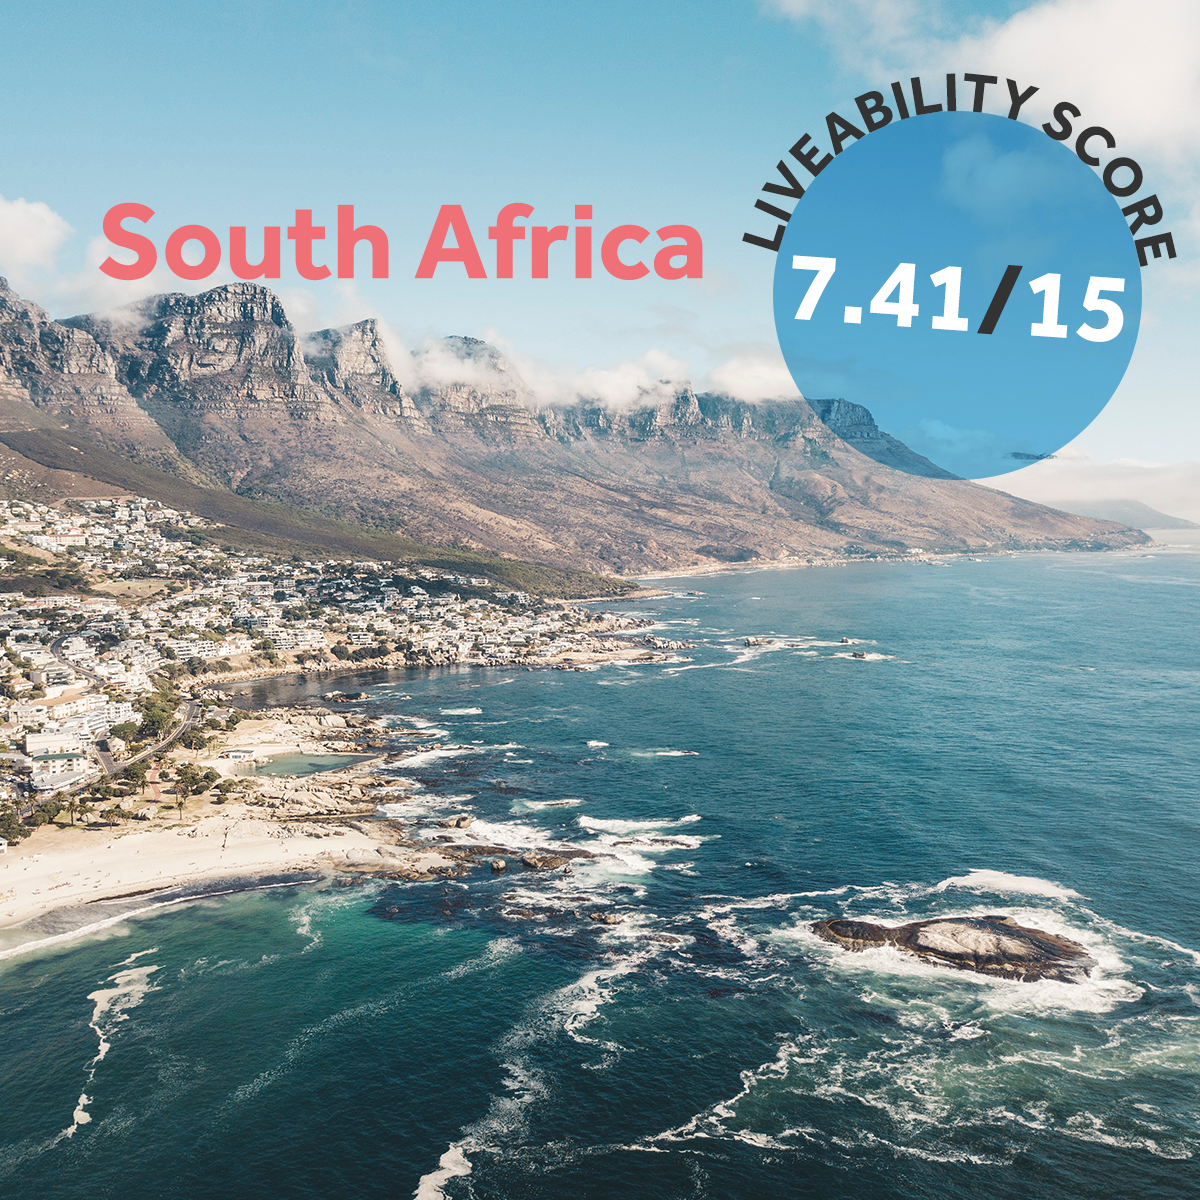 South Africa UK Expat Index